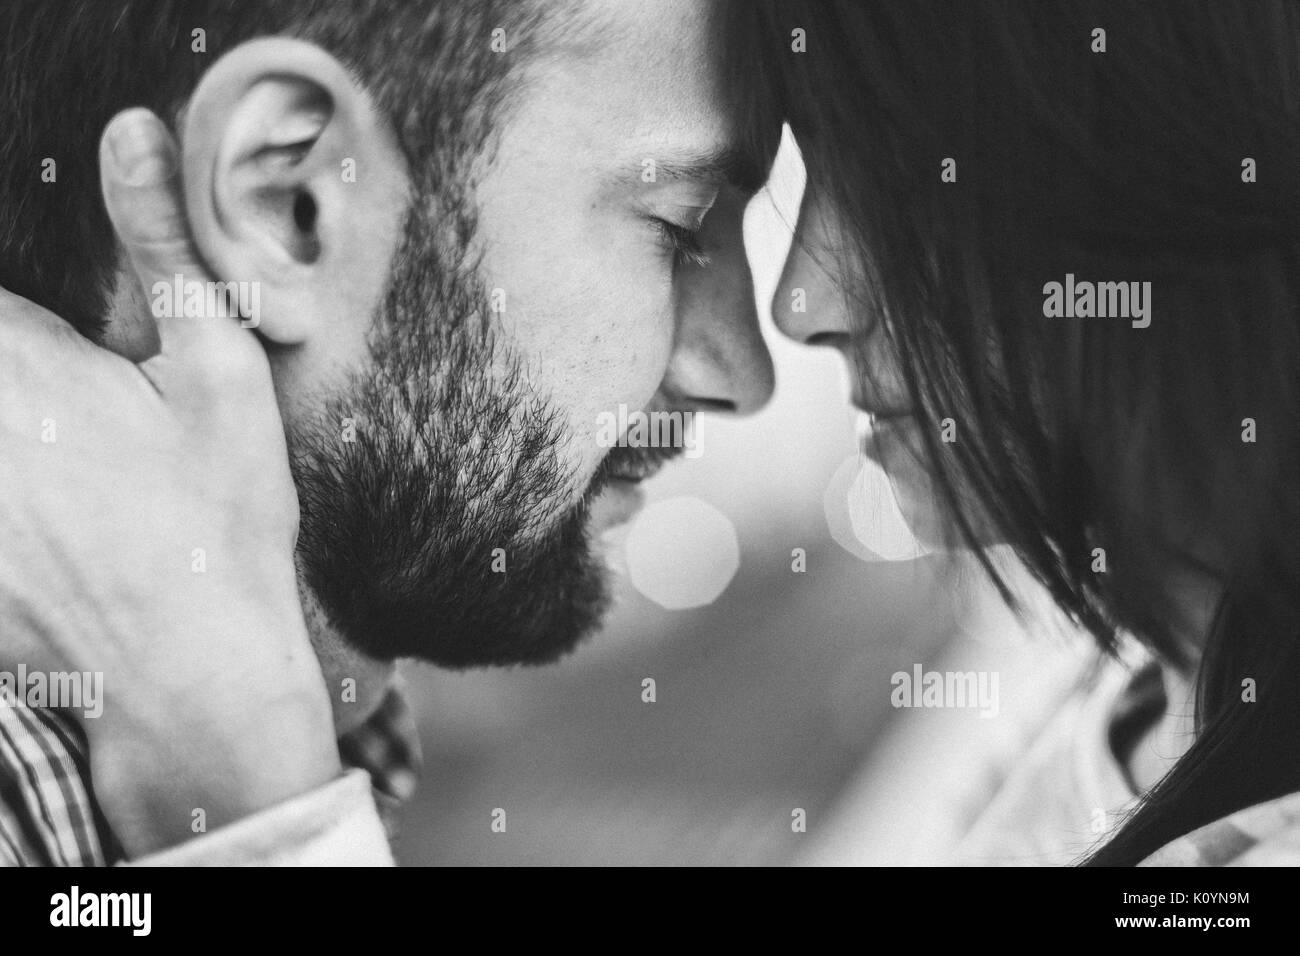 Gentle close-up portrait of man and woman together, happy, looking at each other. Black and white toning - Stock Image